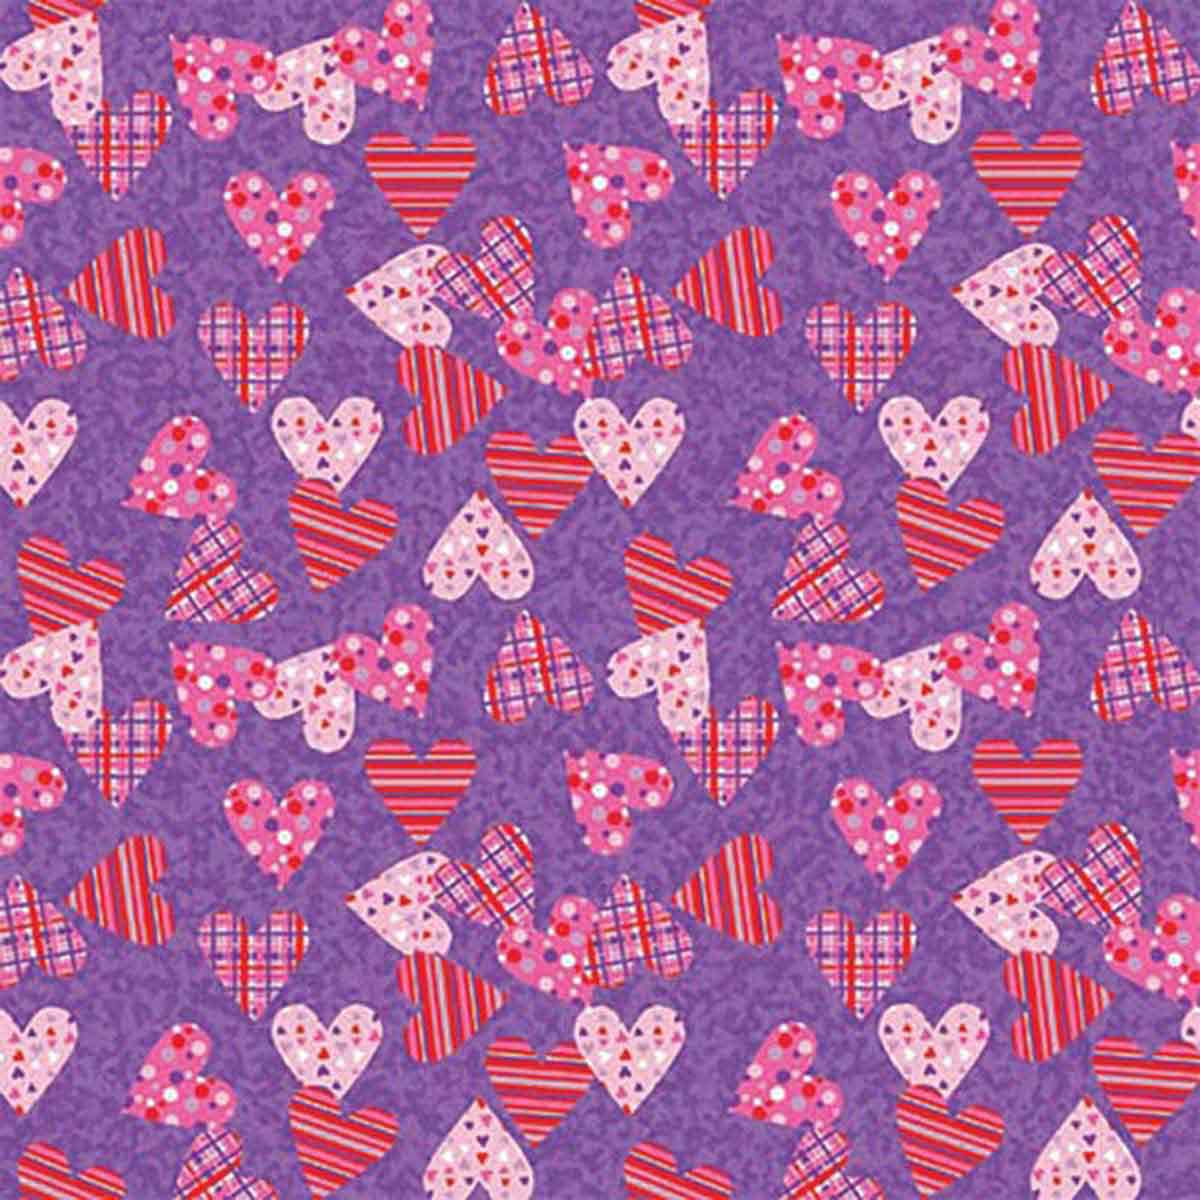 Plaid Polka Dot Hearts Dog Bandanna Square Poly/Cotton Blend by Fancy Finishes